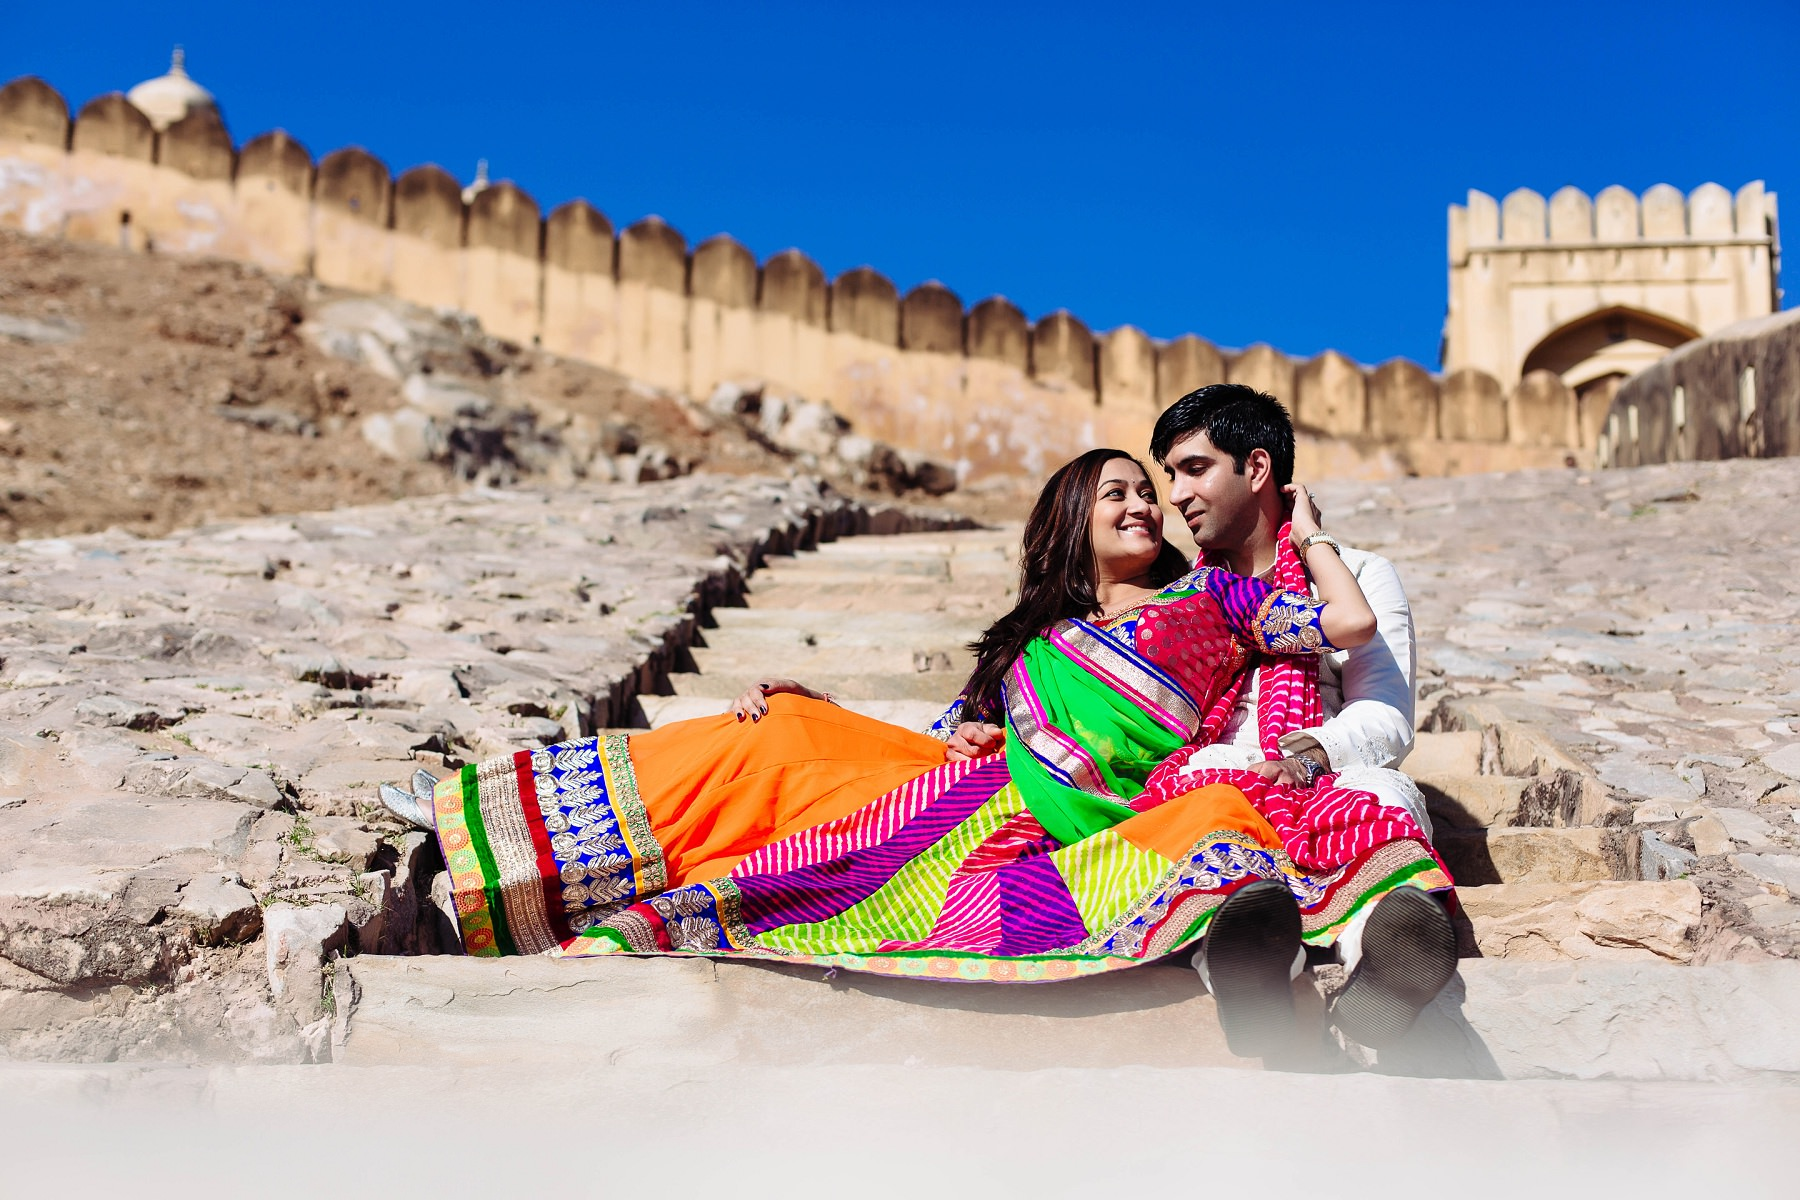 A Monumental Building In Rajasthan India Stock Photo